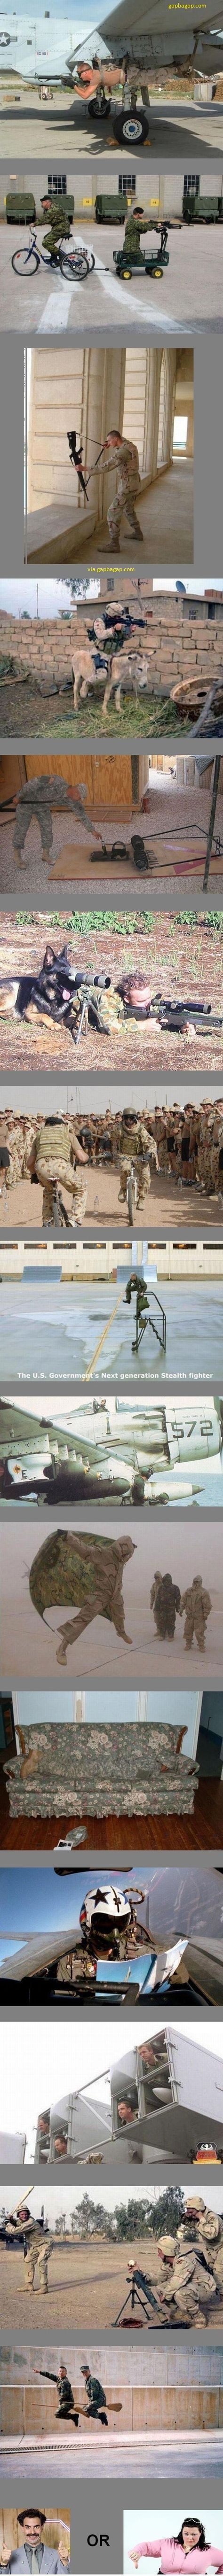 Funny Pictures Of Soldiers Screwing Around